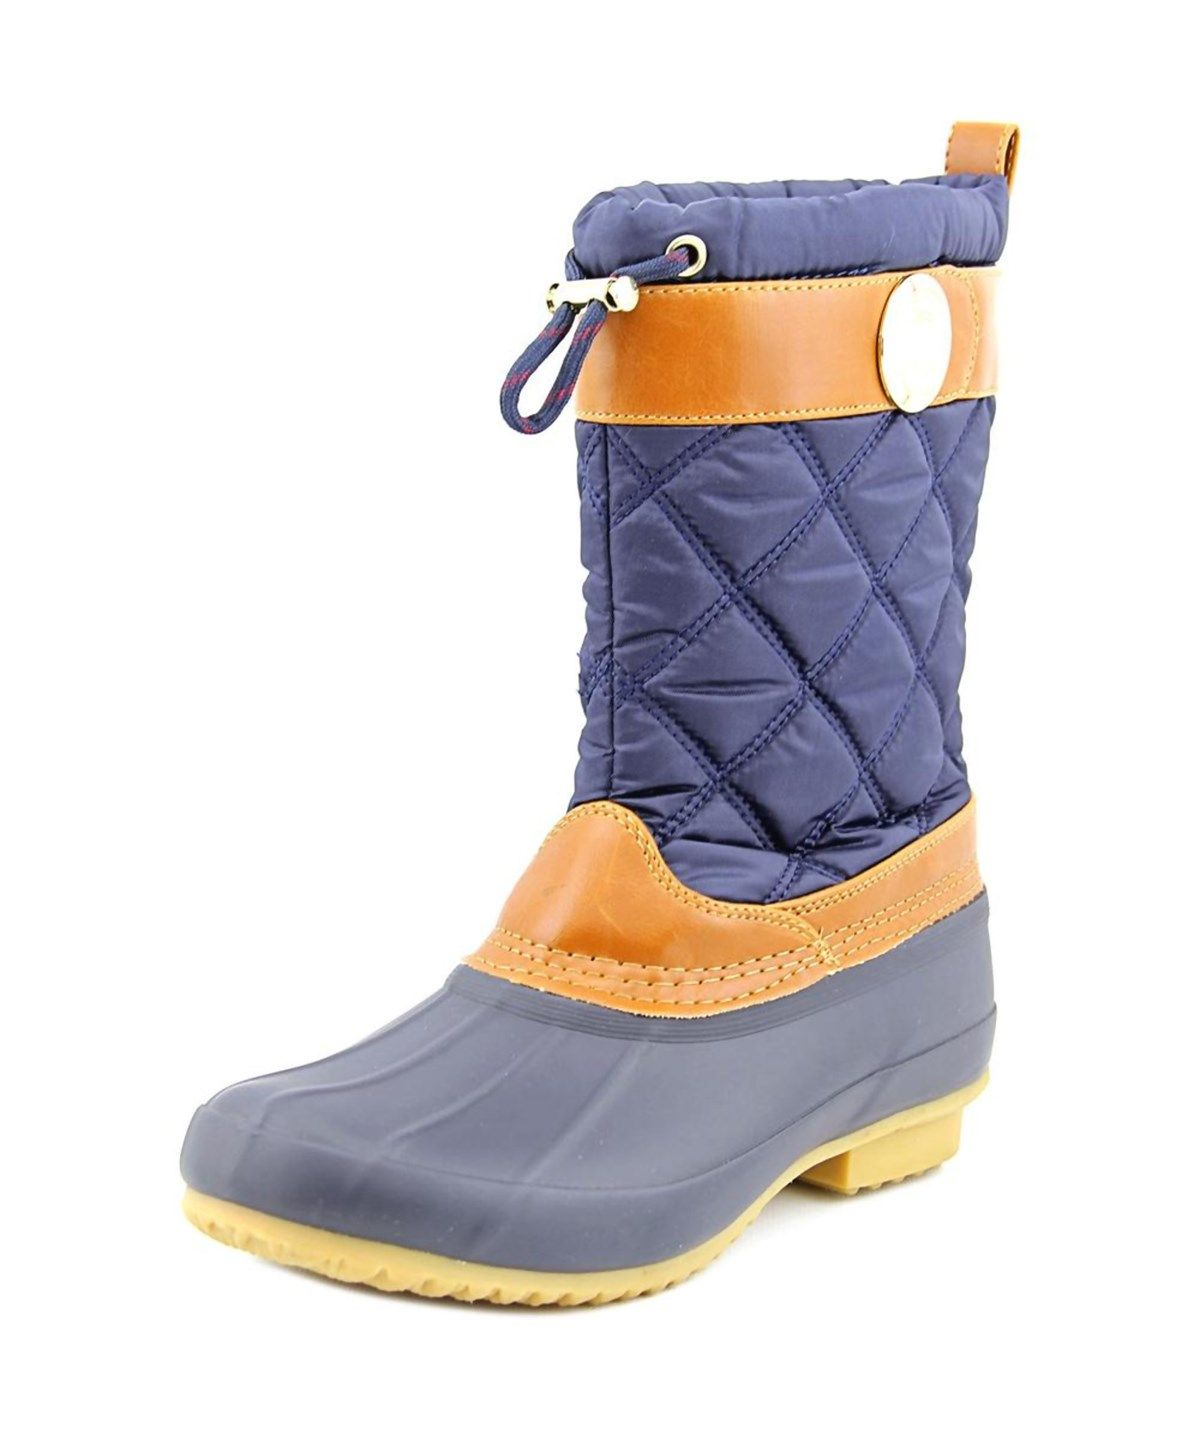 TOMMY HILFIGER TOMMY HILFIGER ARCADIA WOMEN  ROUND TOE CANVAS BLUE RAIN BOOT'. #tommyhilfiger #shoes #boots & booties